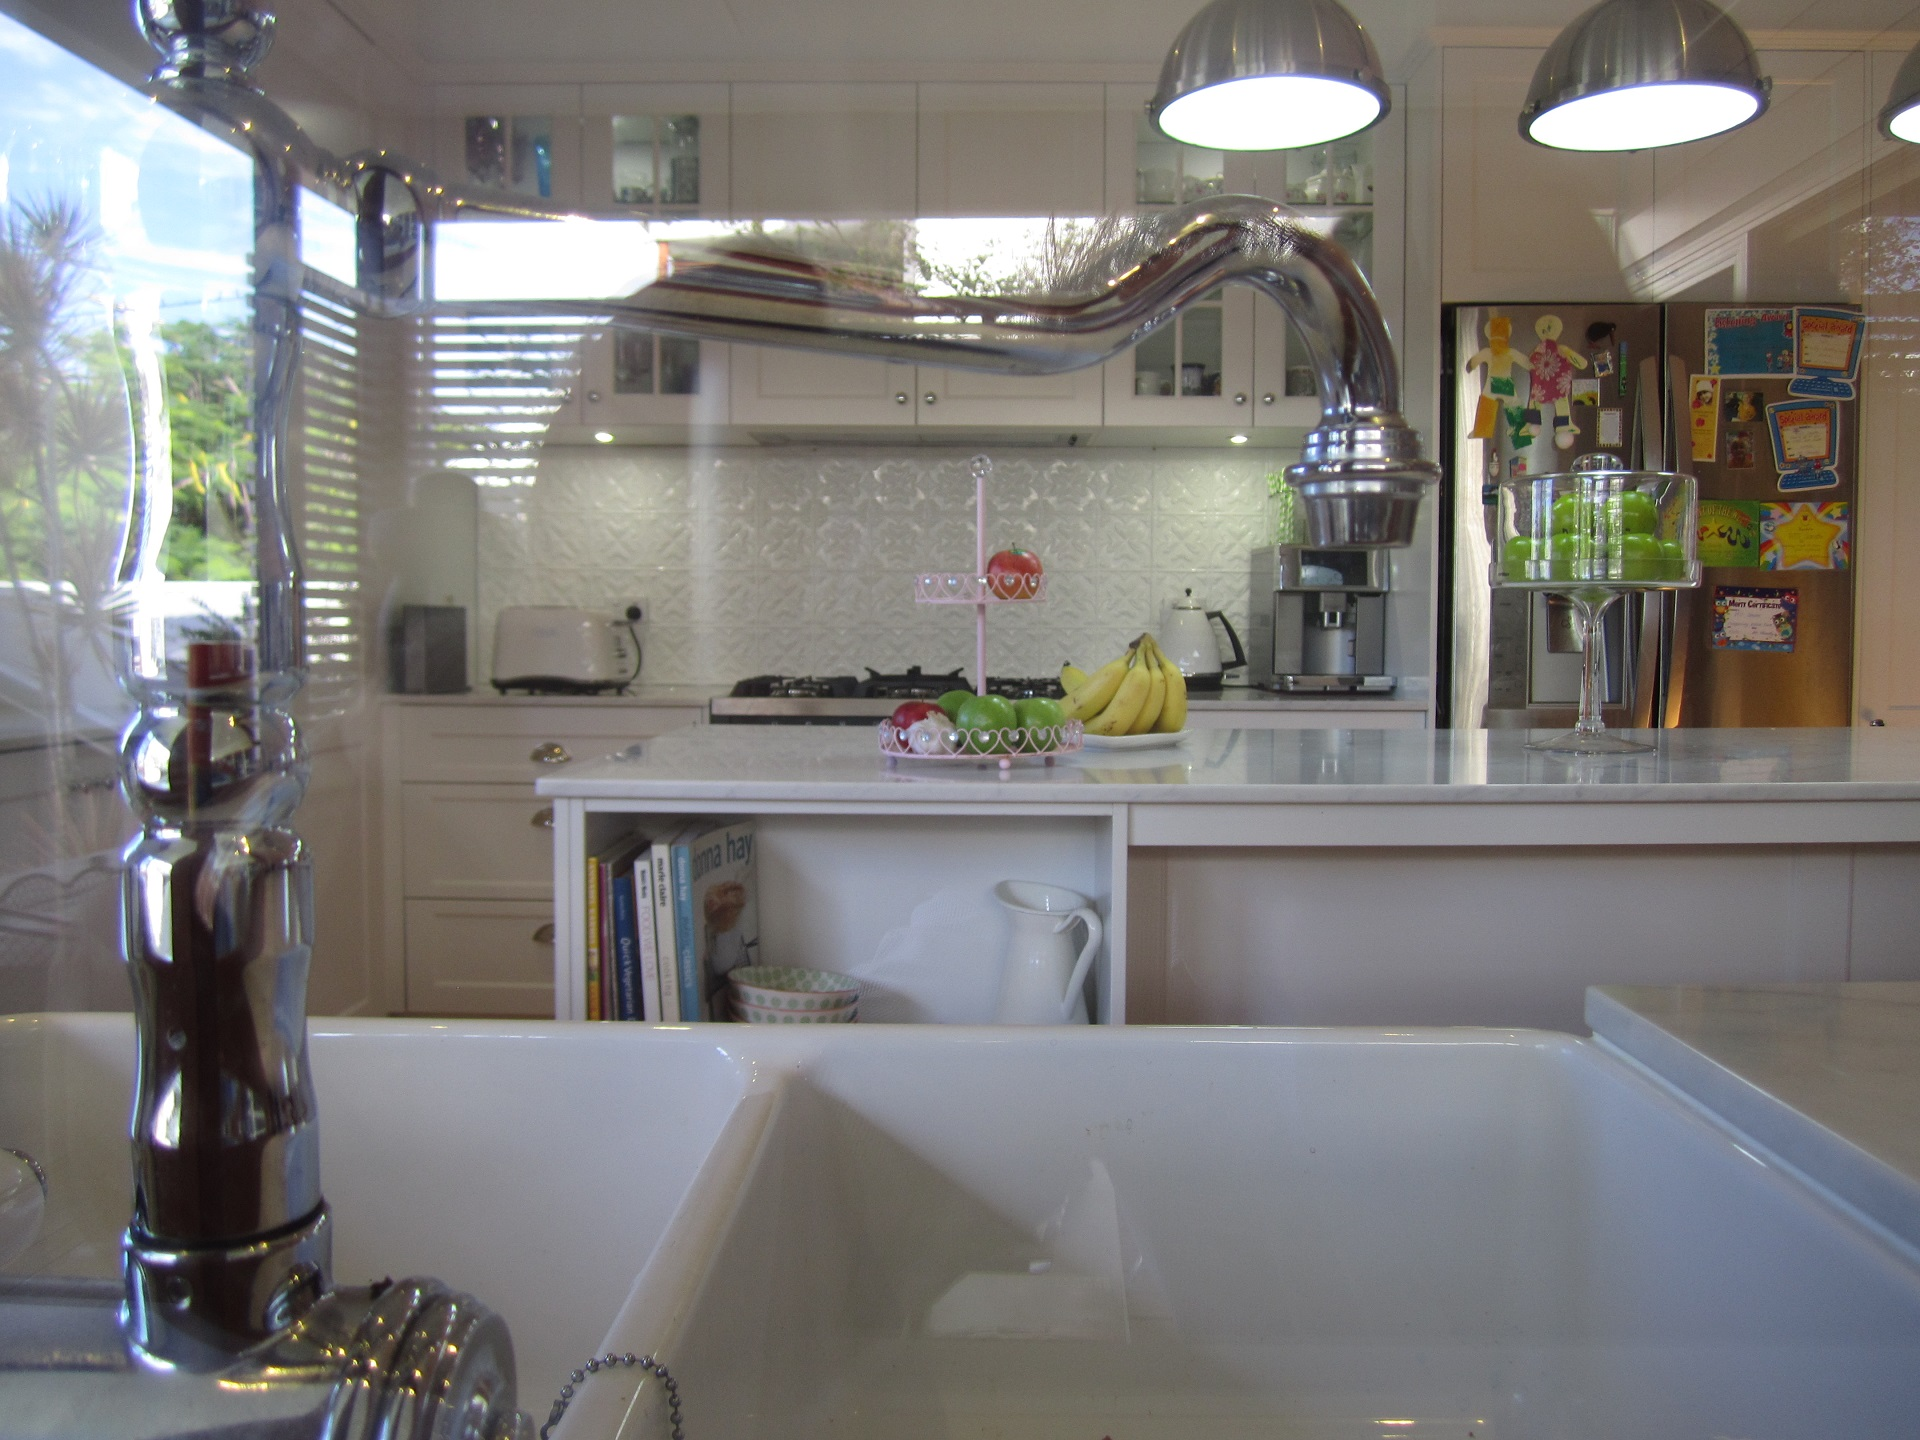 Brisbane Kitchen Design Garate Graceville Traditional KitchenRenovation (15)